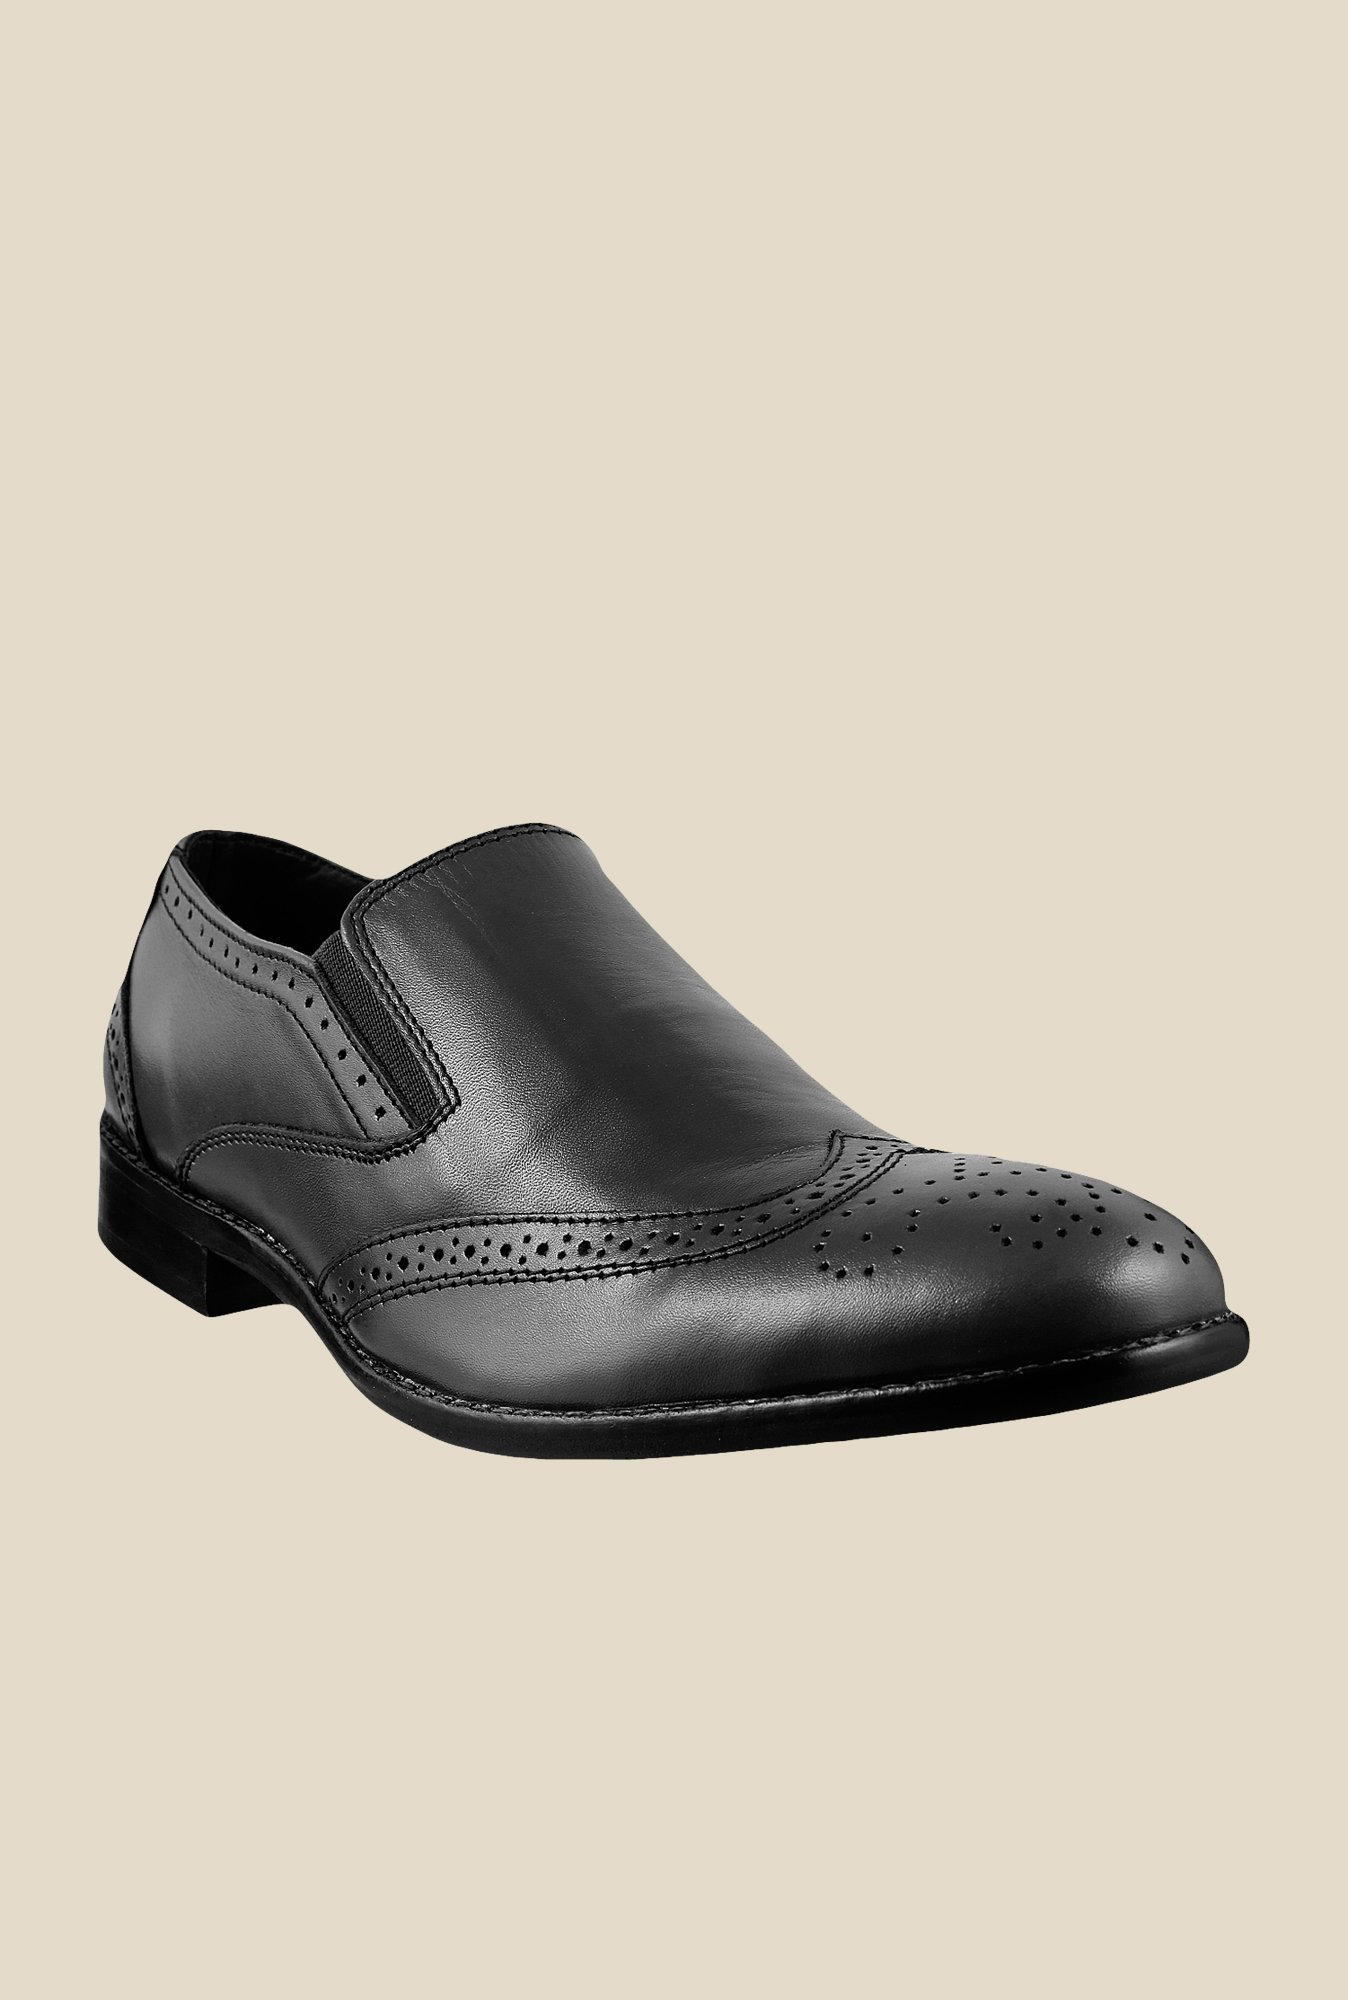 Da Vinchi by Metro Black Brogue Shoes